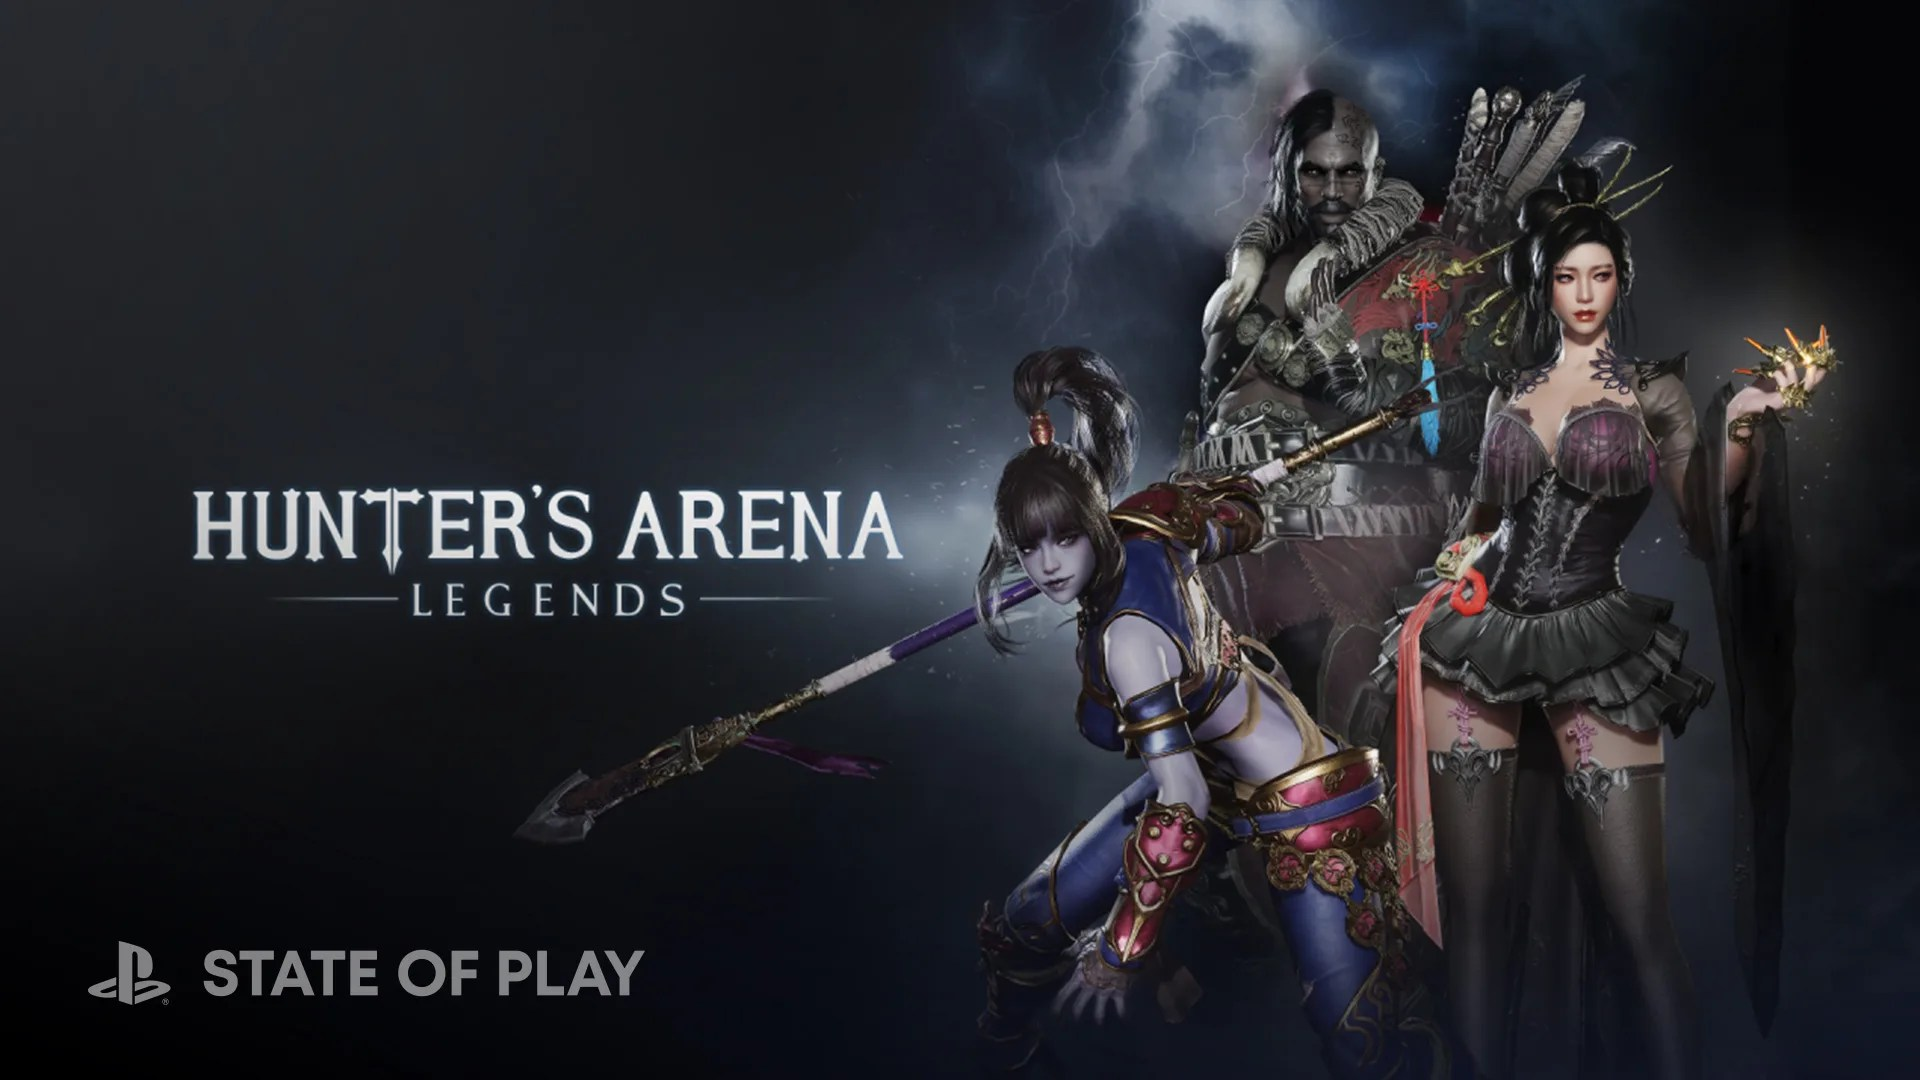 30-player battle royale Hunter's Arena hits PS4, PS5 August 3